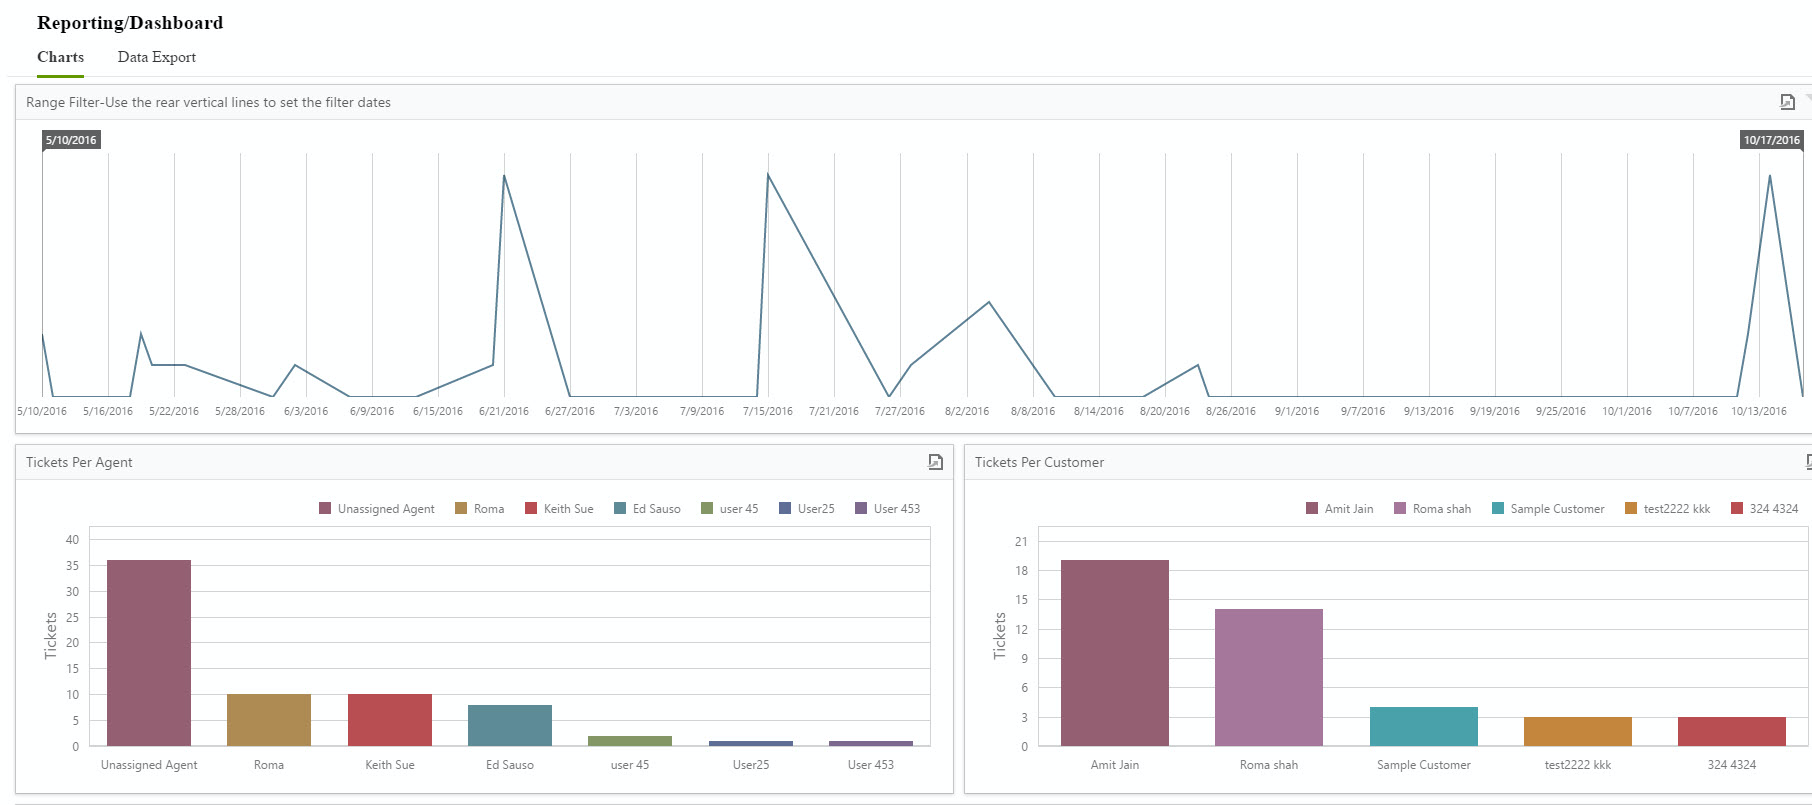 Reporting Dashboard provides you with filter to drill down the details for different metrics.